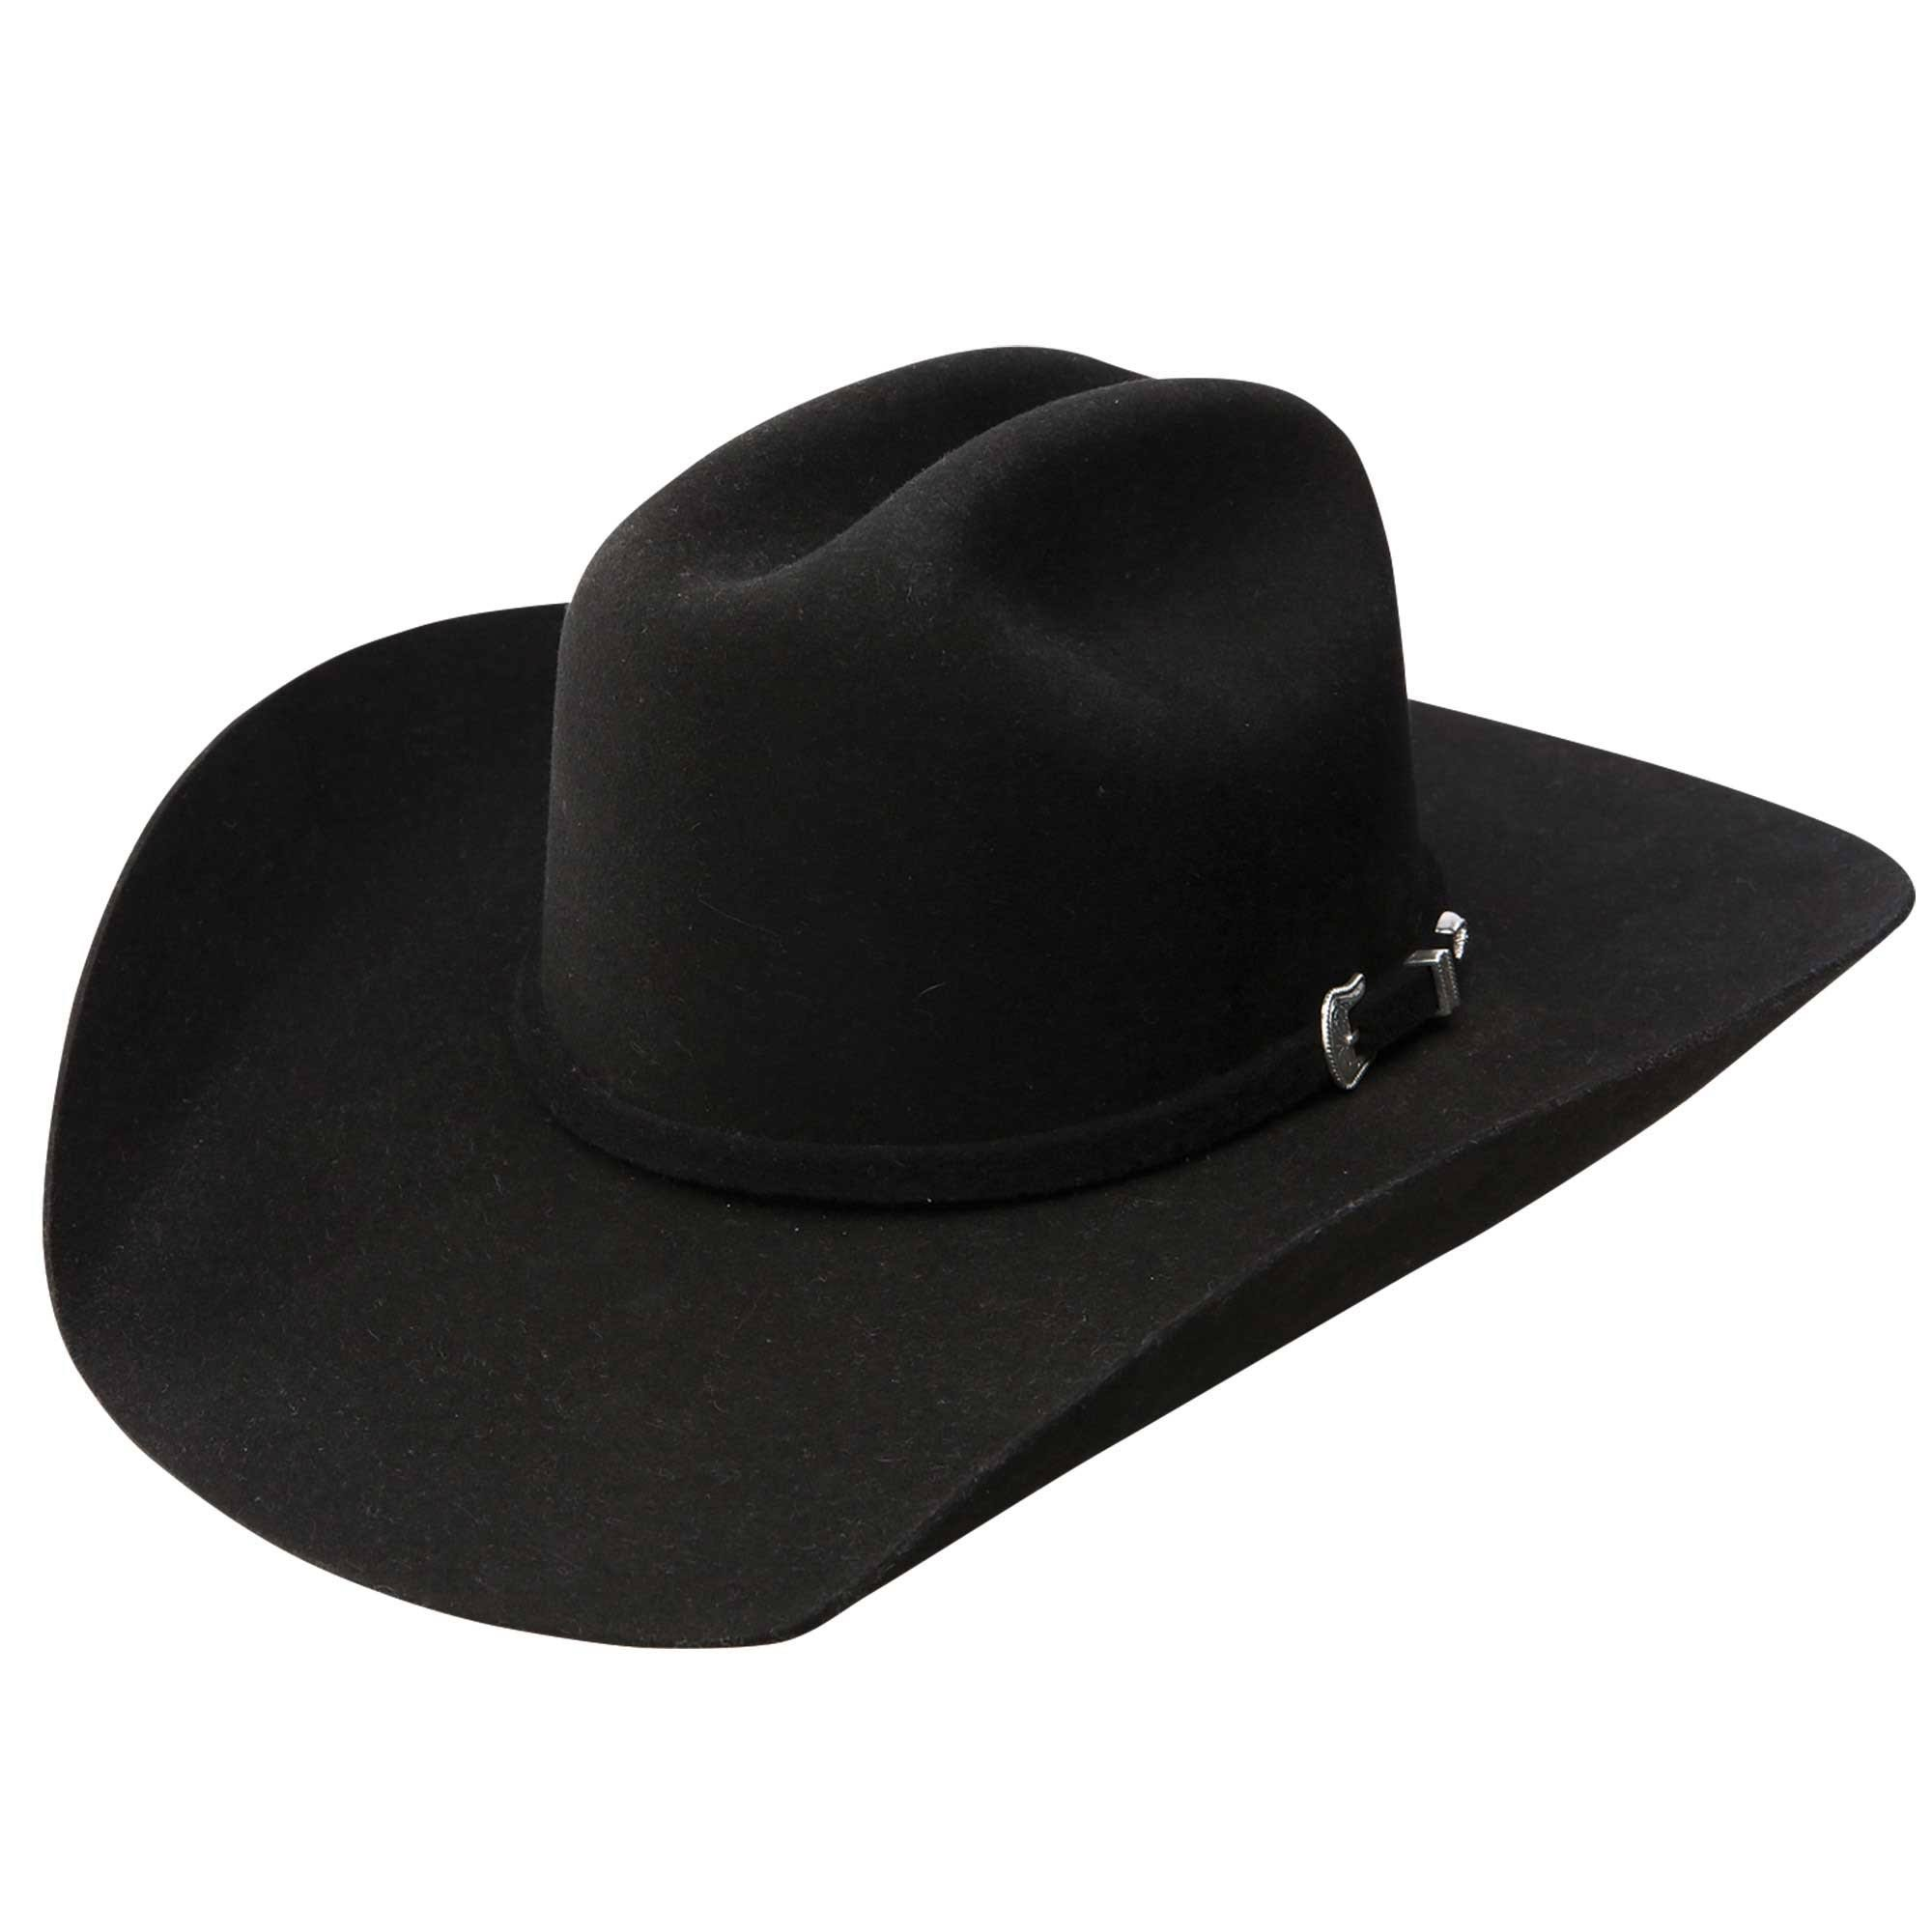 Stetson and Dobbs RWTCKR-6842 Mens Tucker Cowboy Hat, Black - 7 1/4